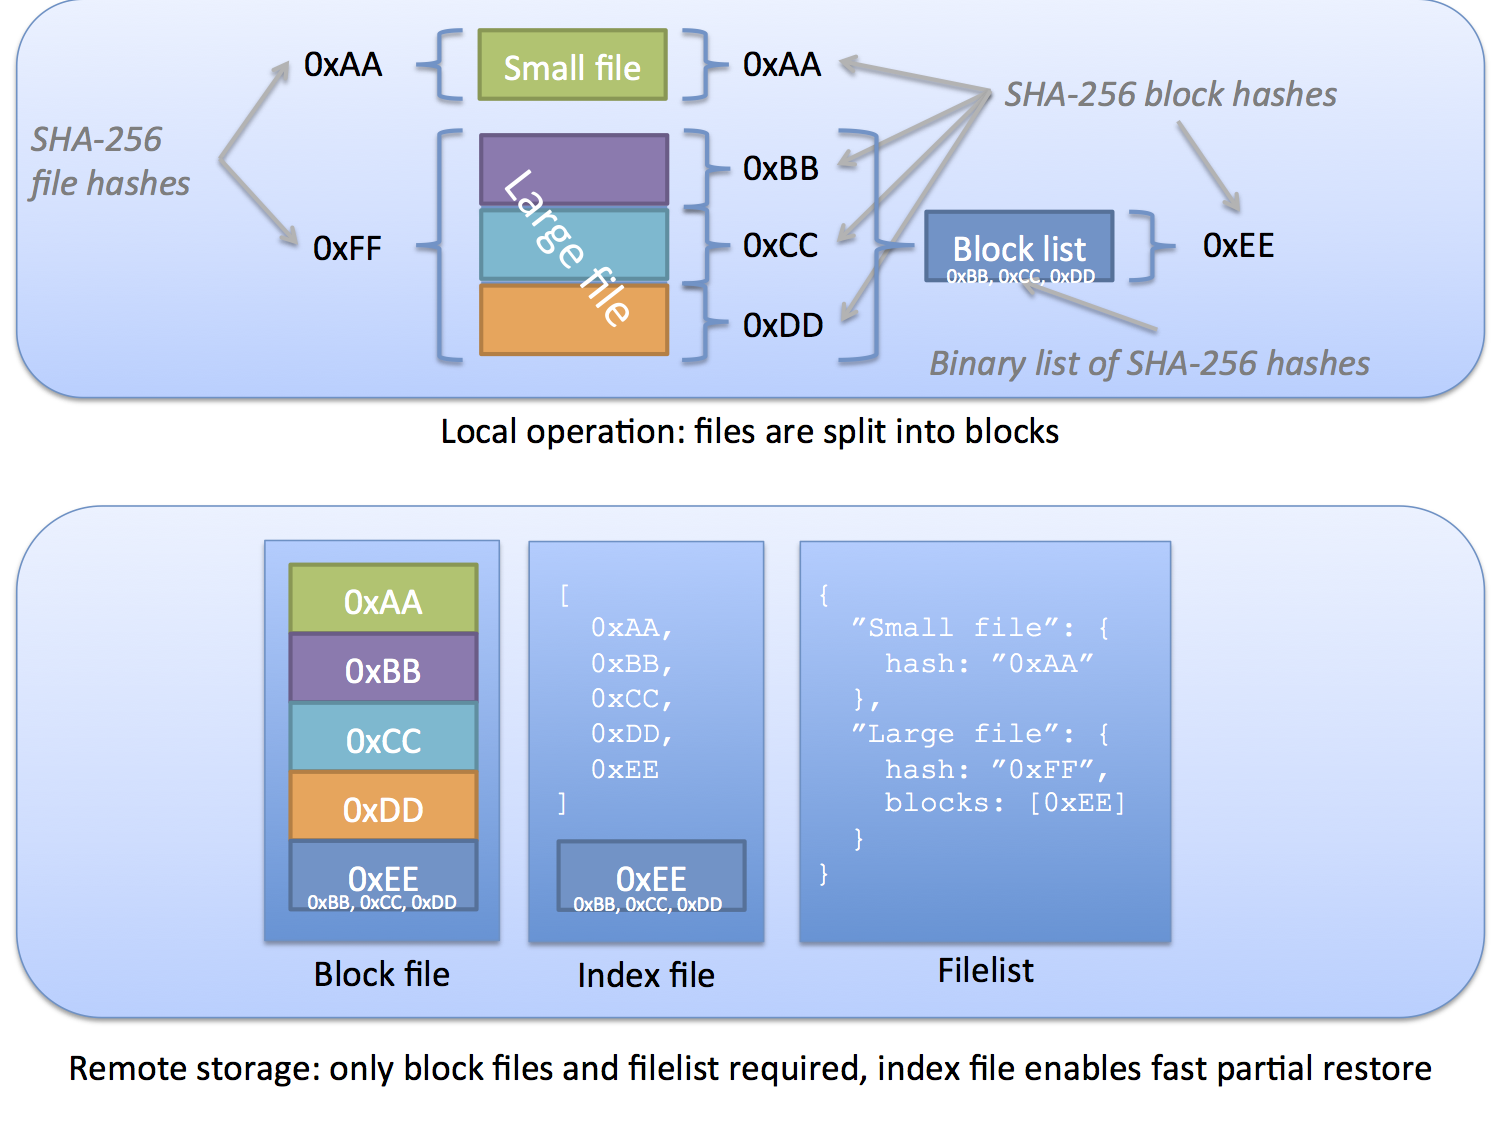 Figure 1 Graphical overview of blocks and file types in Duplicati However, there are two complications relating to this setup. One problem is that the list of hashes can become very large.